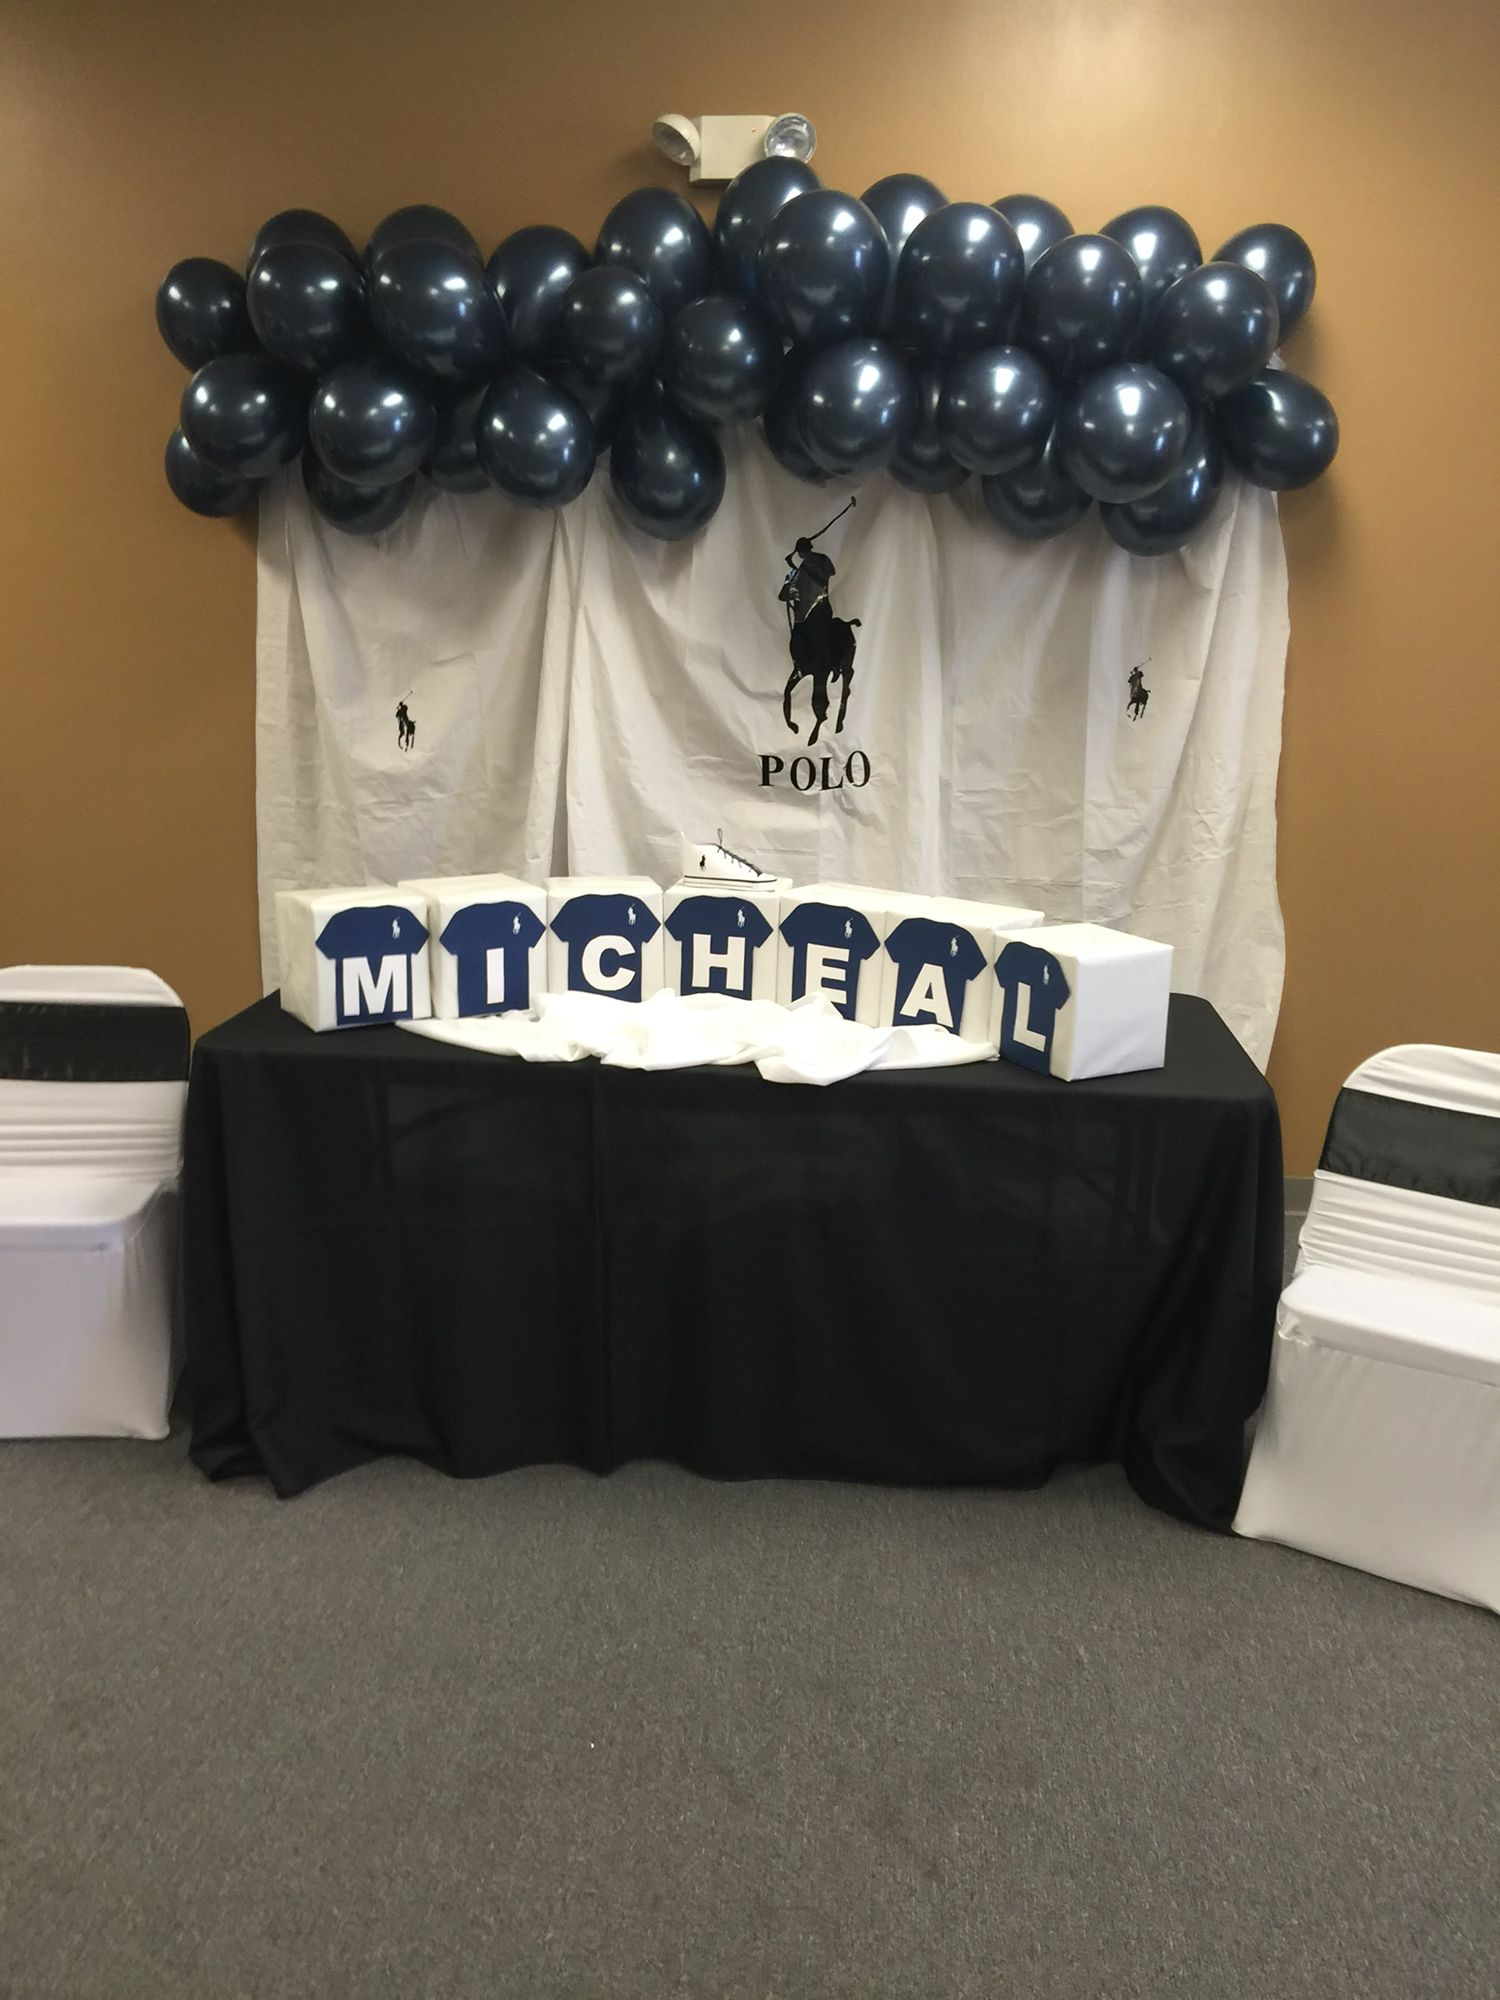 Polo Baby Shower | Royalty baby shower, Polo baby shower ...